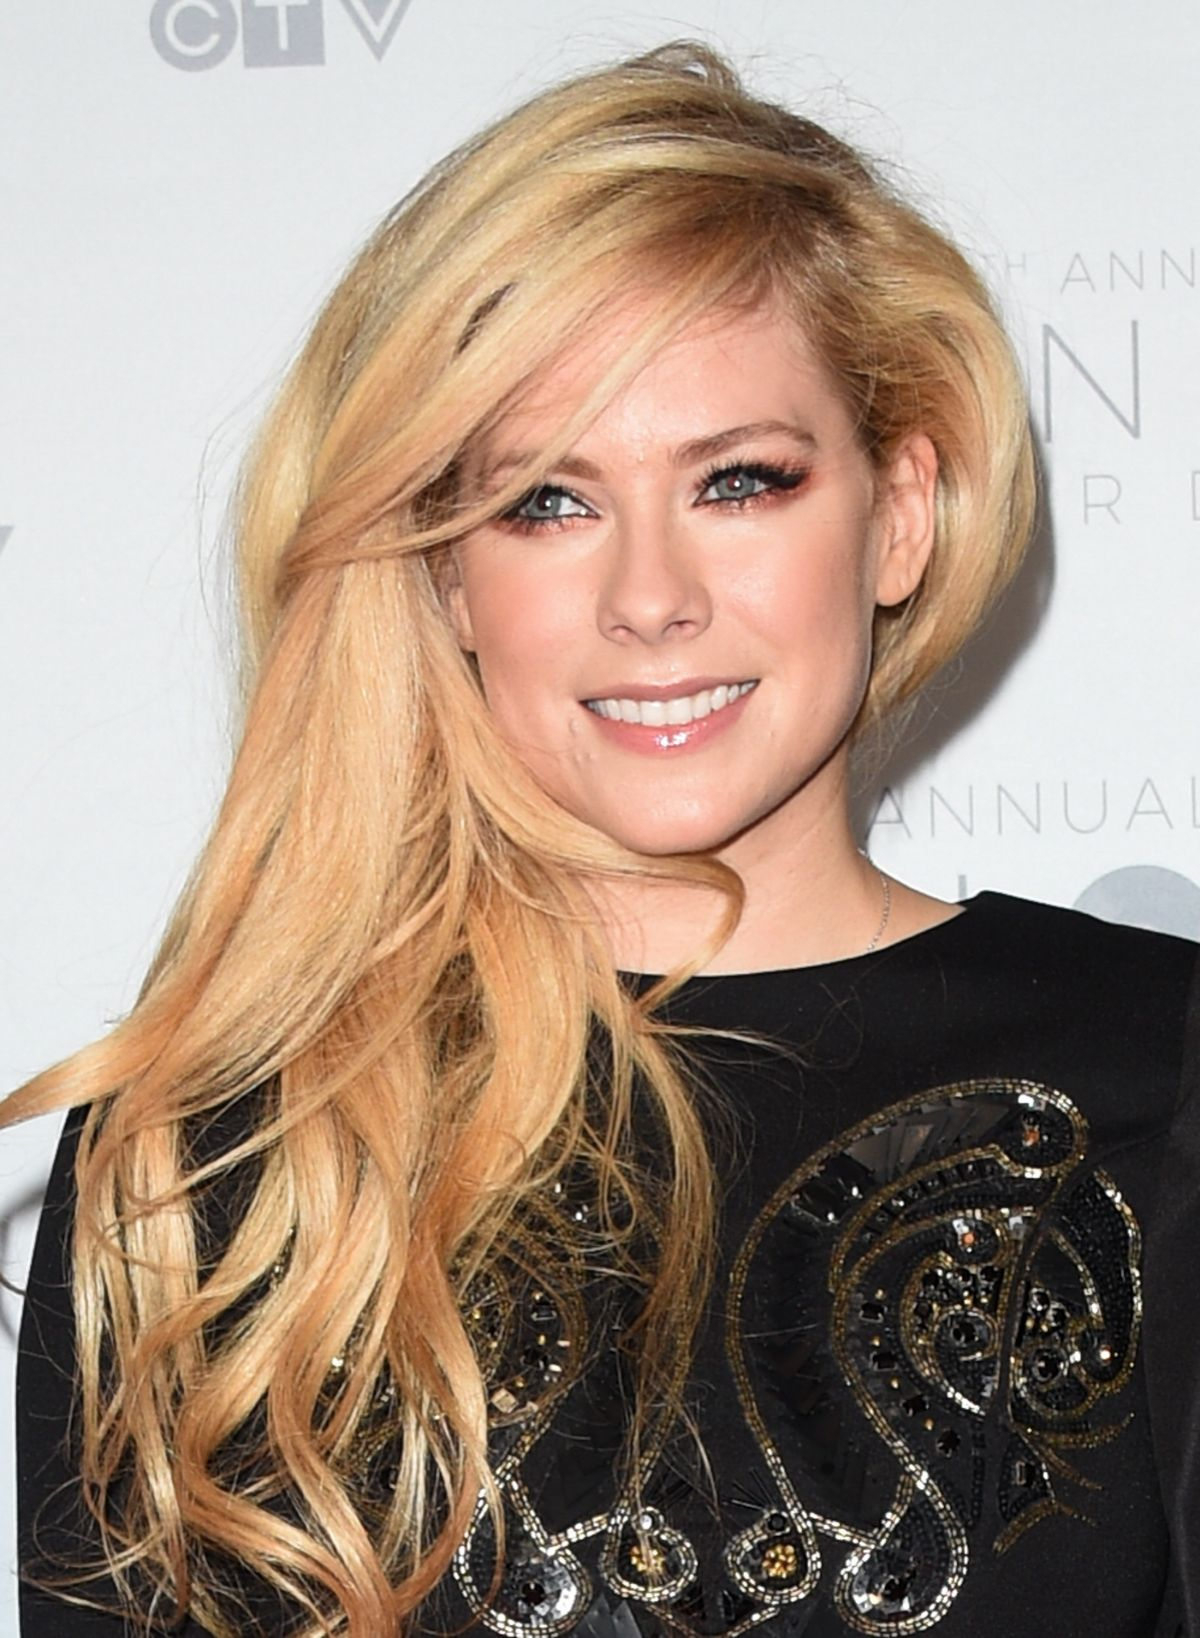 AVRIL LAVIGNE at Juno Awards in Calgary 04/03/2016 ... Avril Lavigne